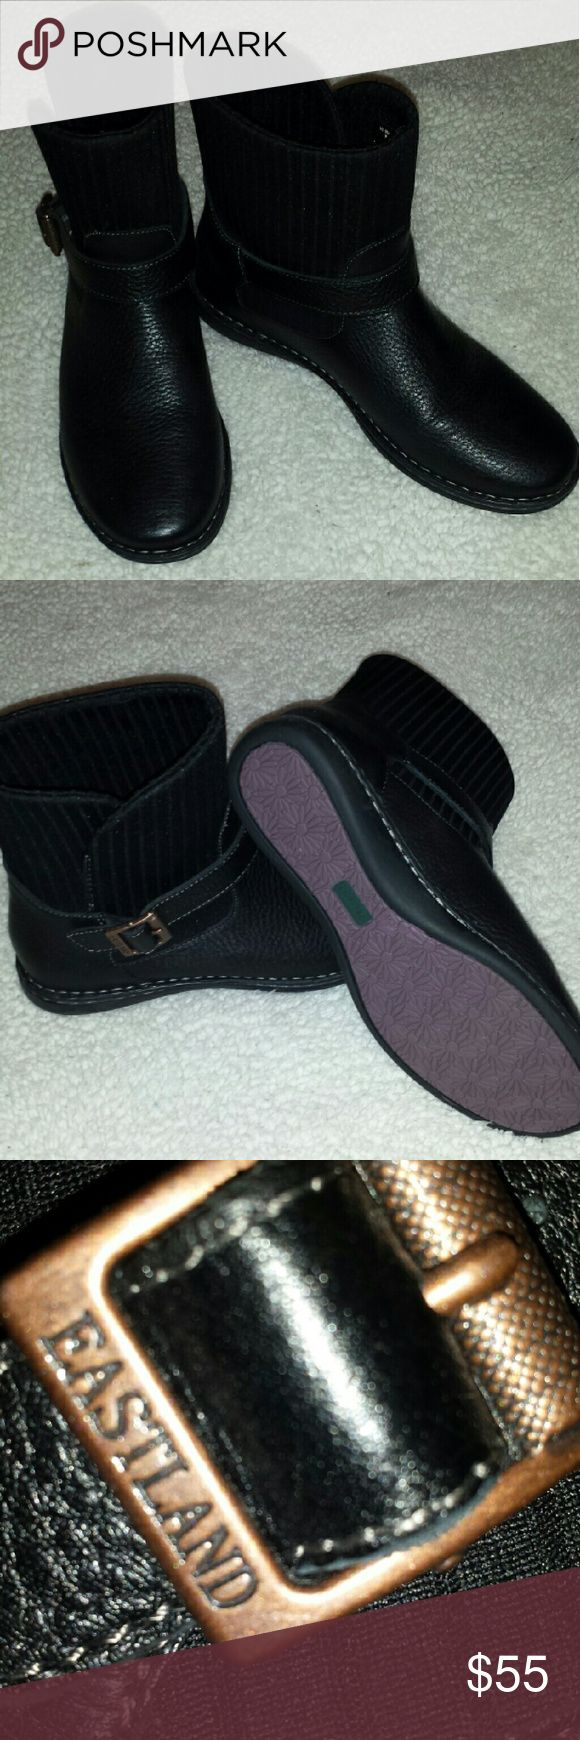 Eastland booties Black Eastland booties. NWOT. In original box. Eastland Shoes Ankle Boots & Booties